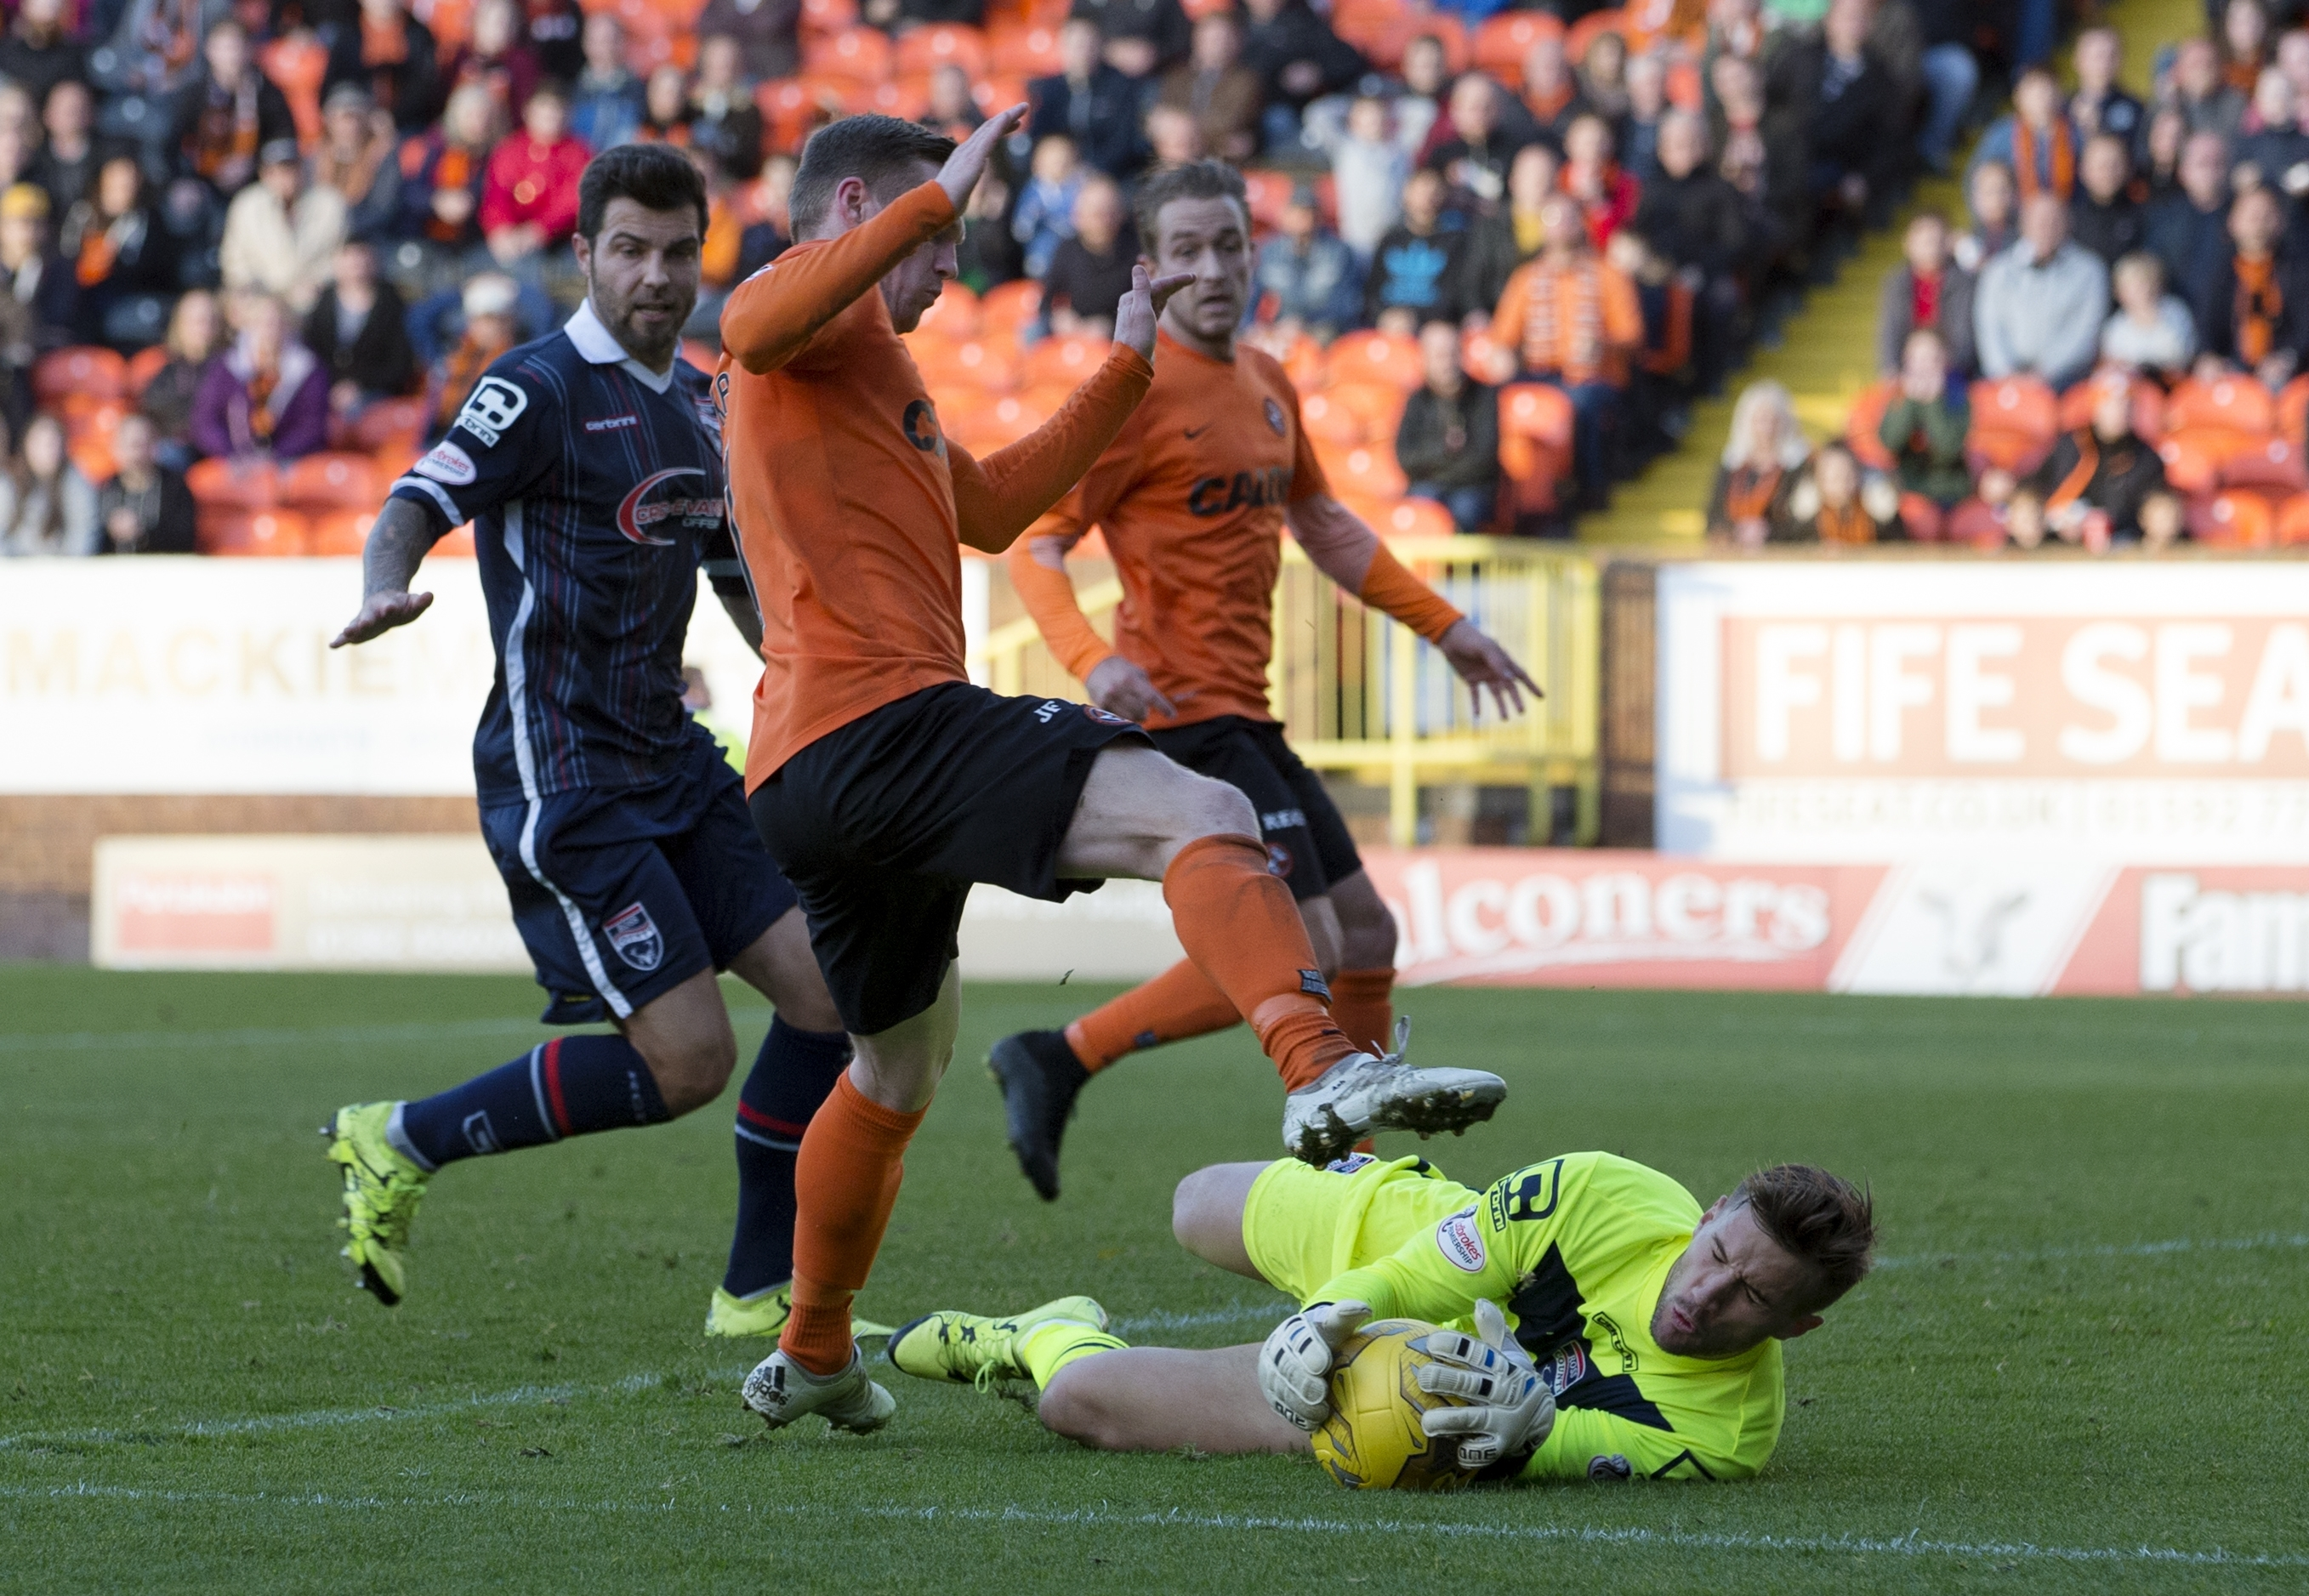 Police have issued a warning ahead of this weekend's Ross County v Dundee United game